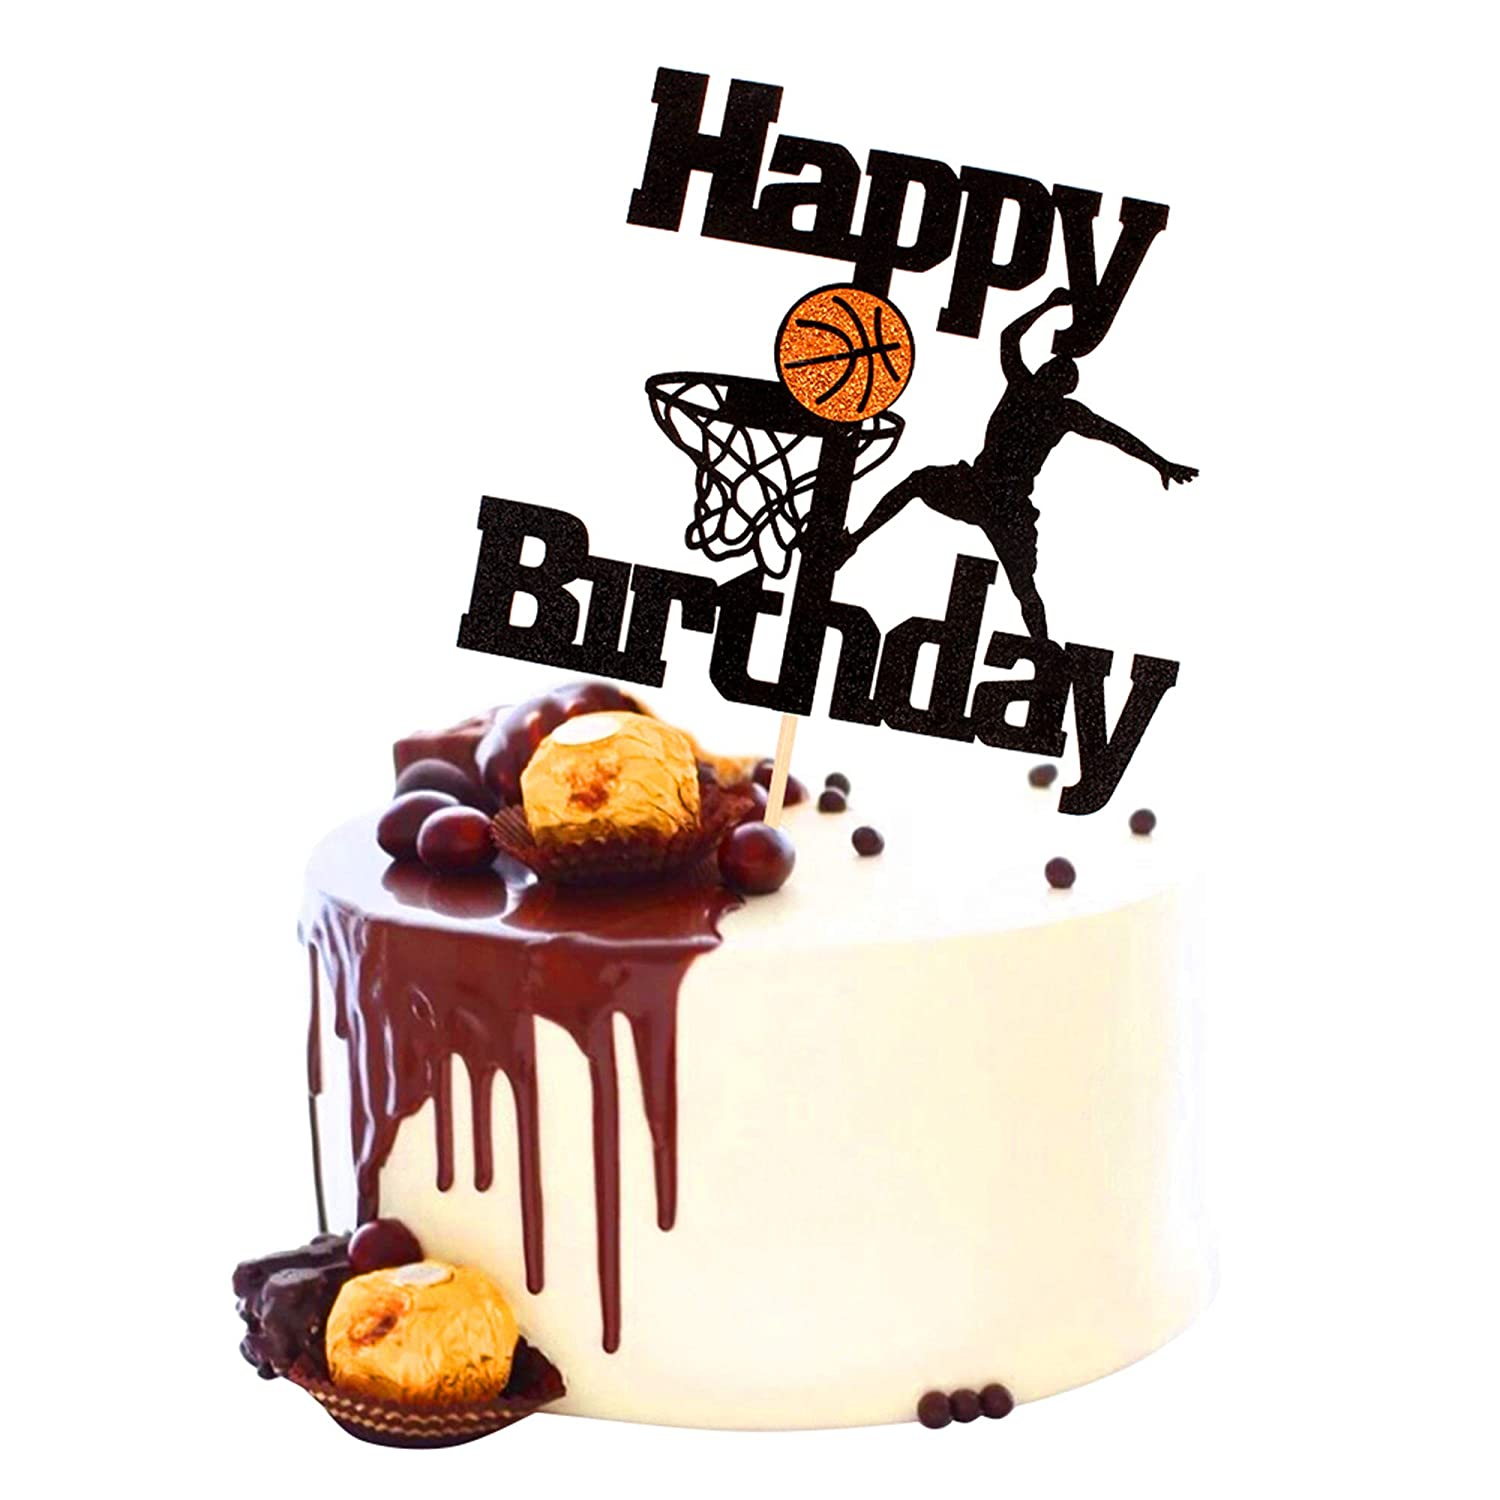 Unimall Basketball Some reservation Happy Birthday Colorado Springs Mall Scene T Topper Cake